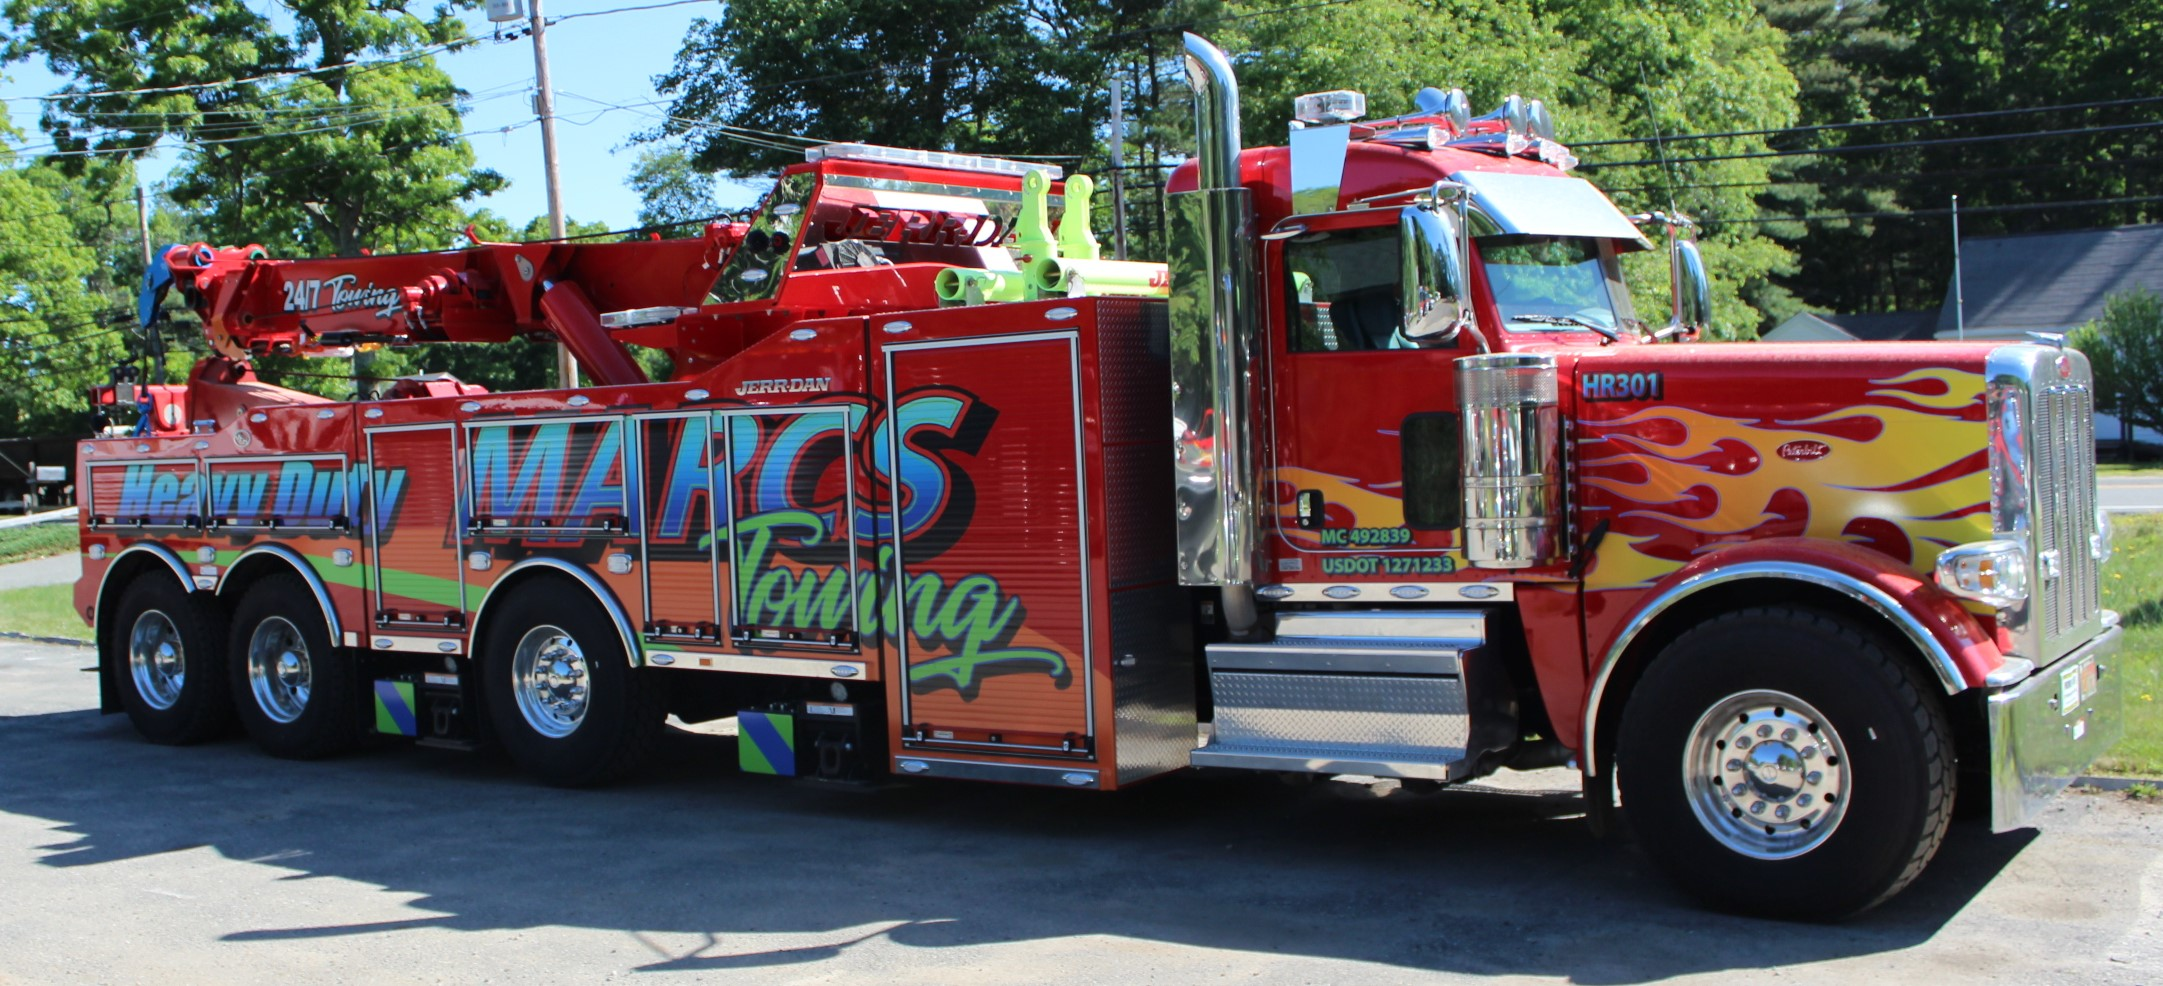 Tow Truck Tow Times And Ford Trucks Name Top Winners Of Tow Truck Beauty